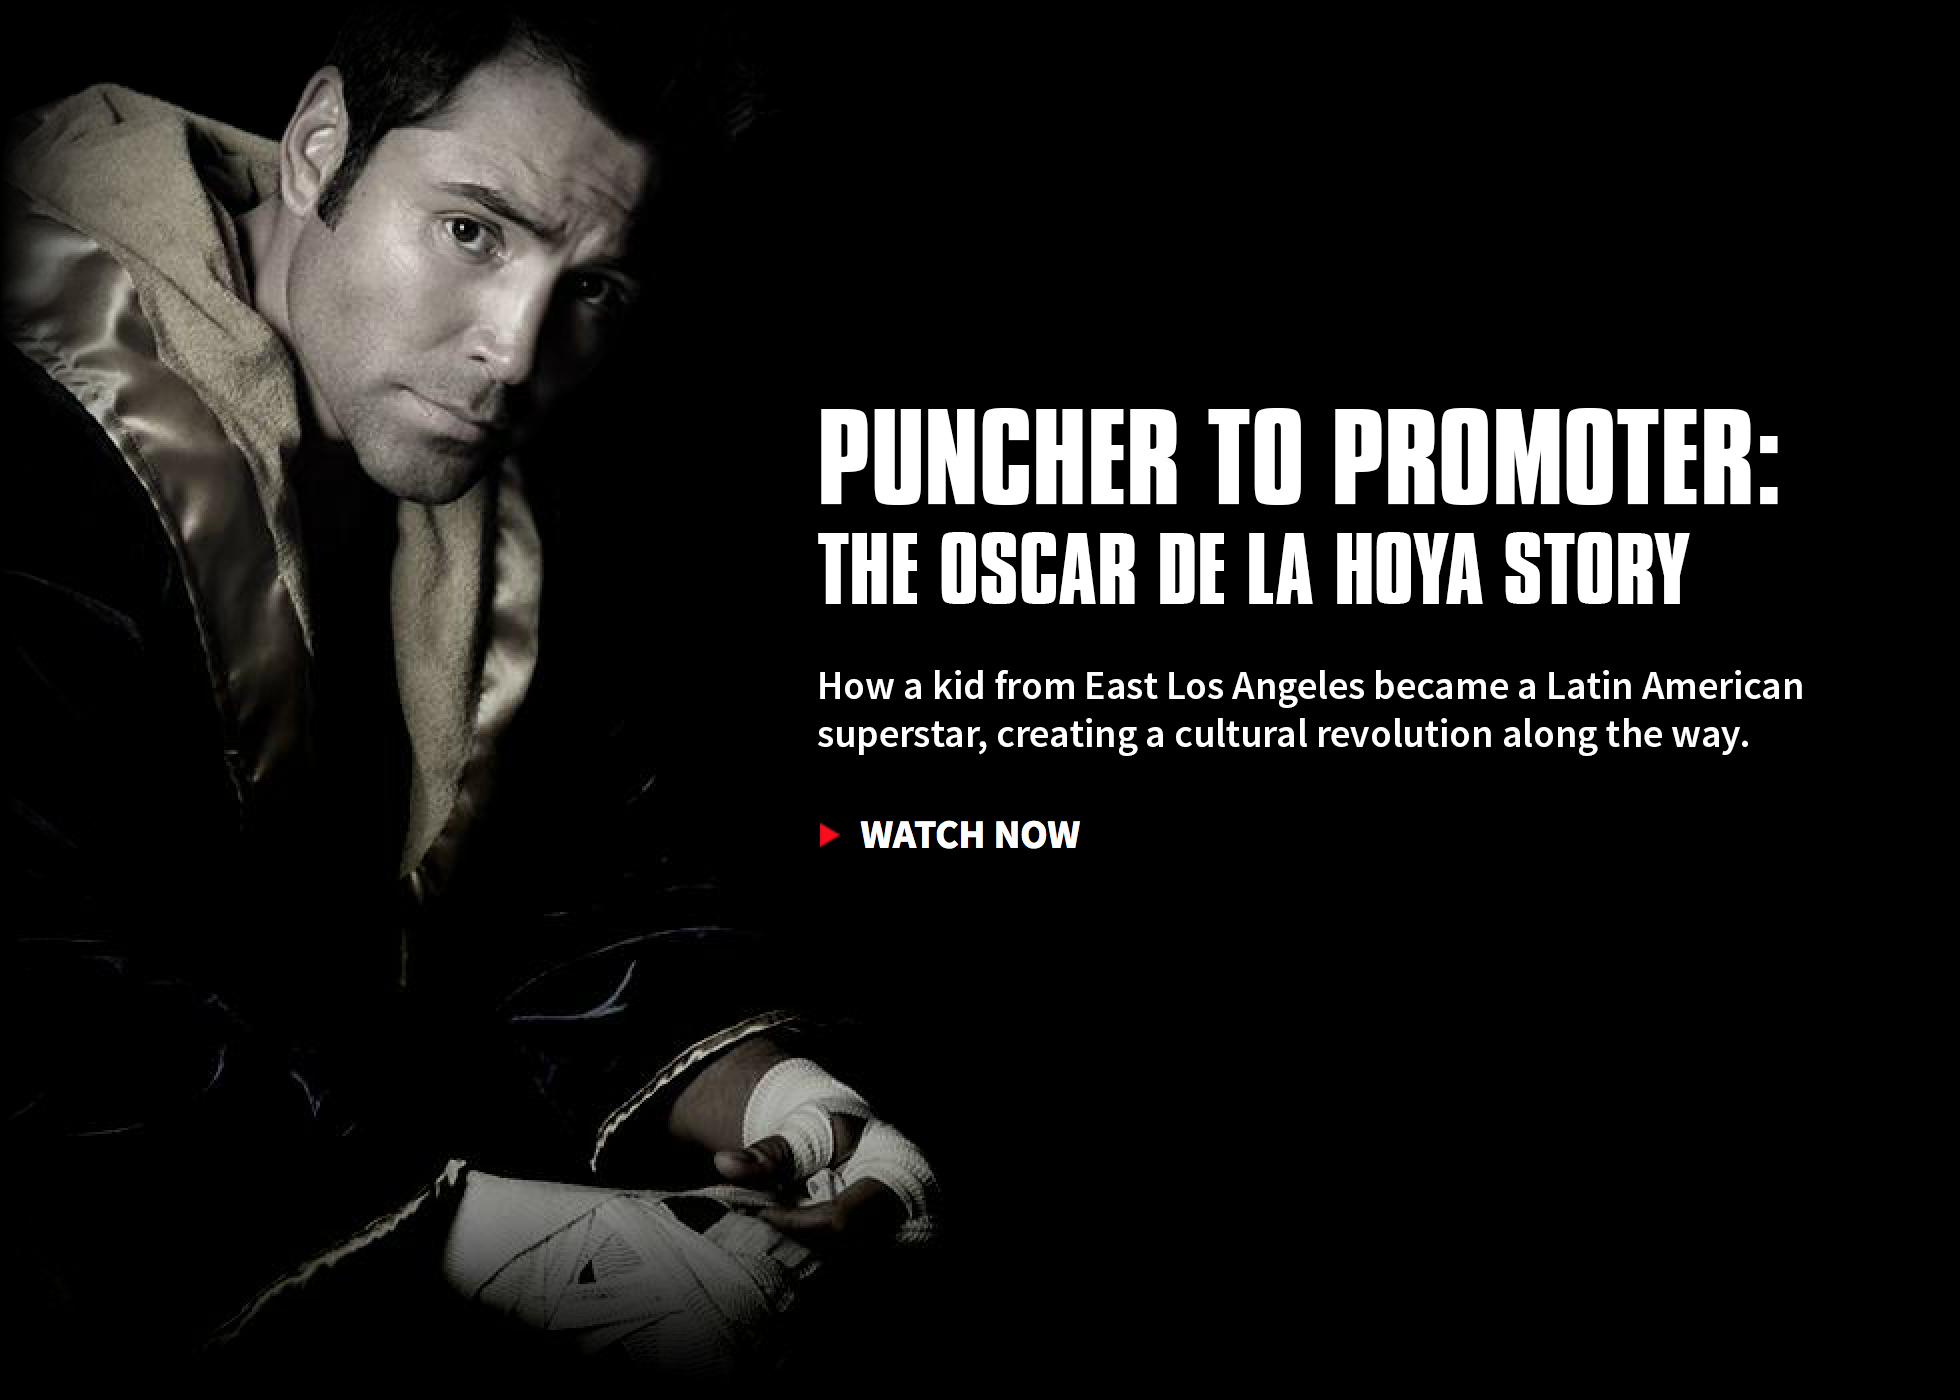 Puncher to Promoter